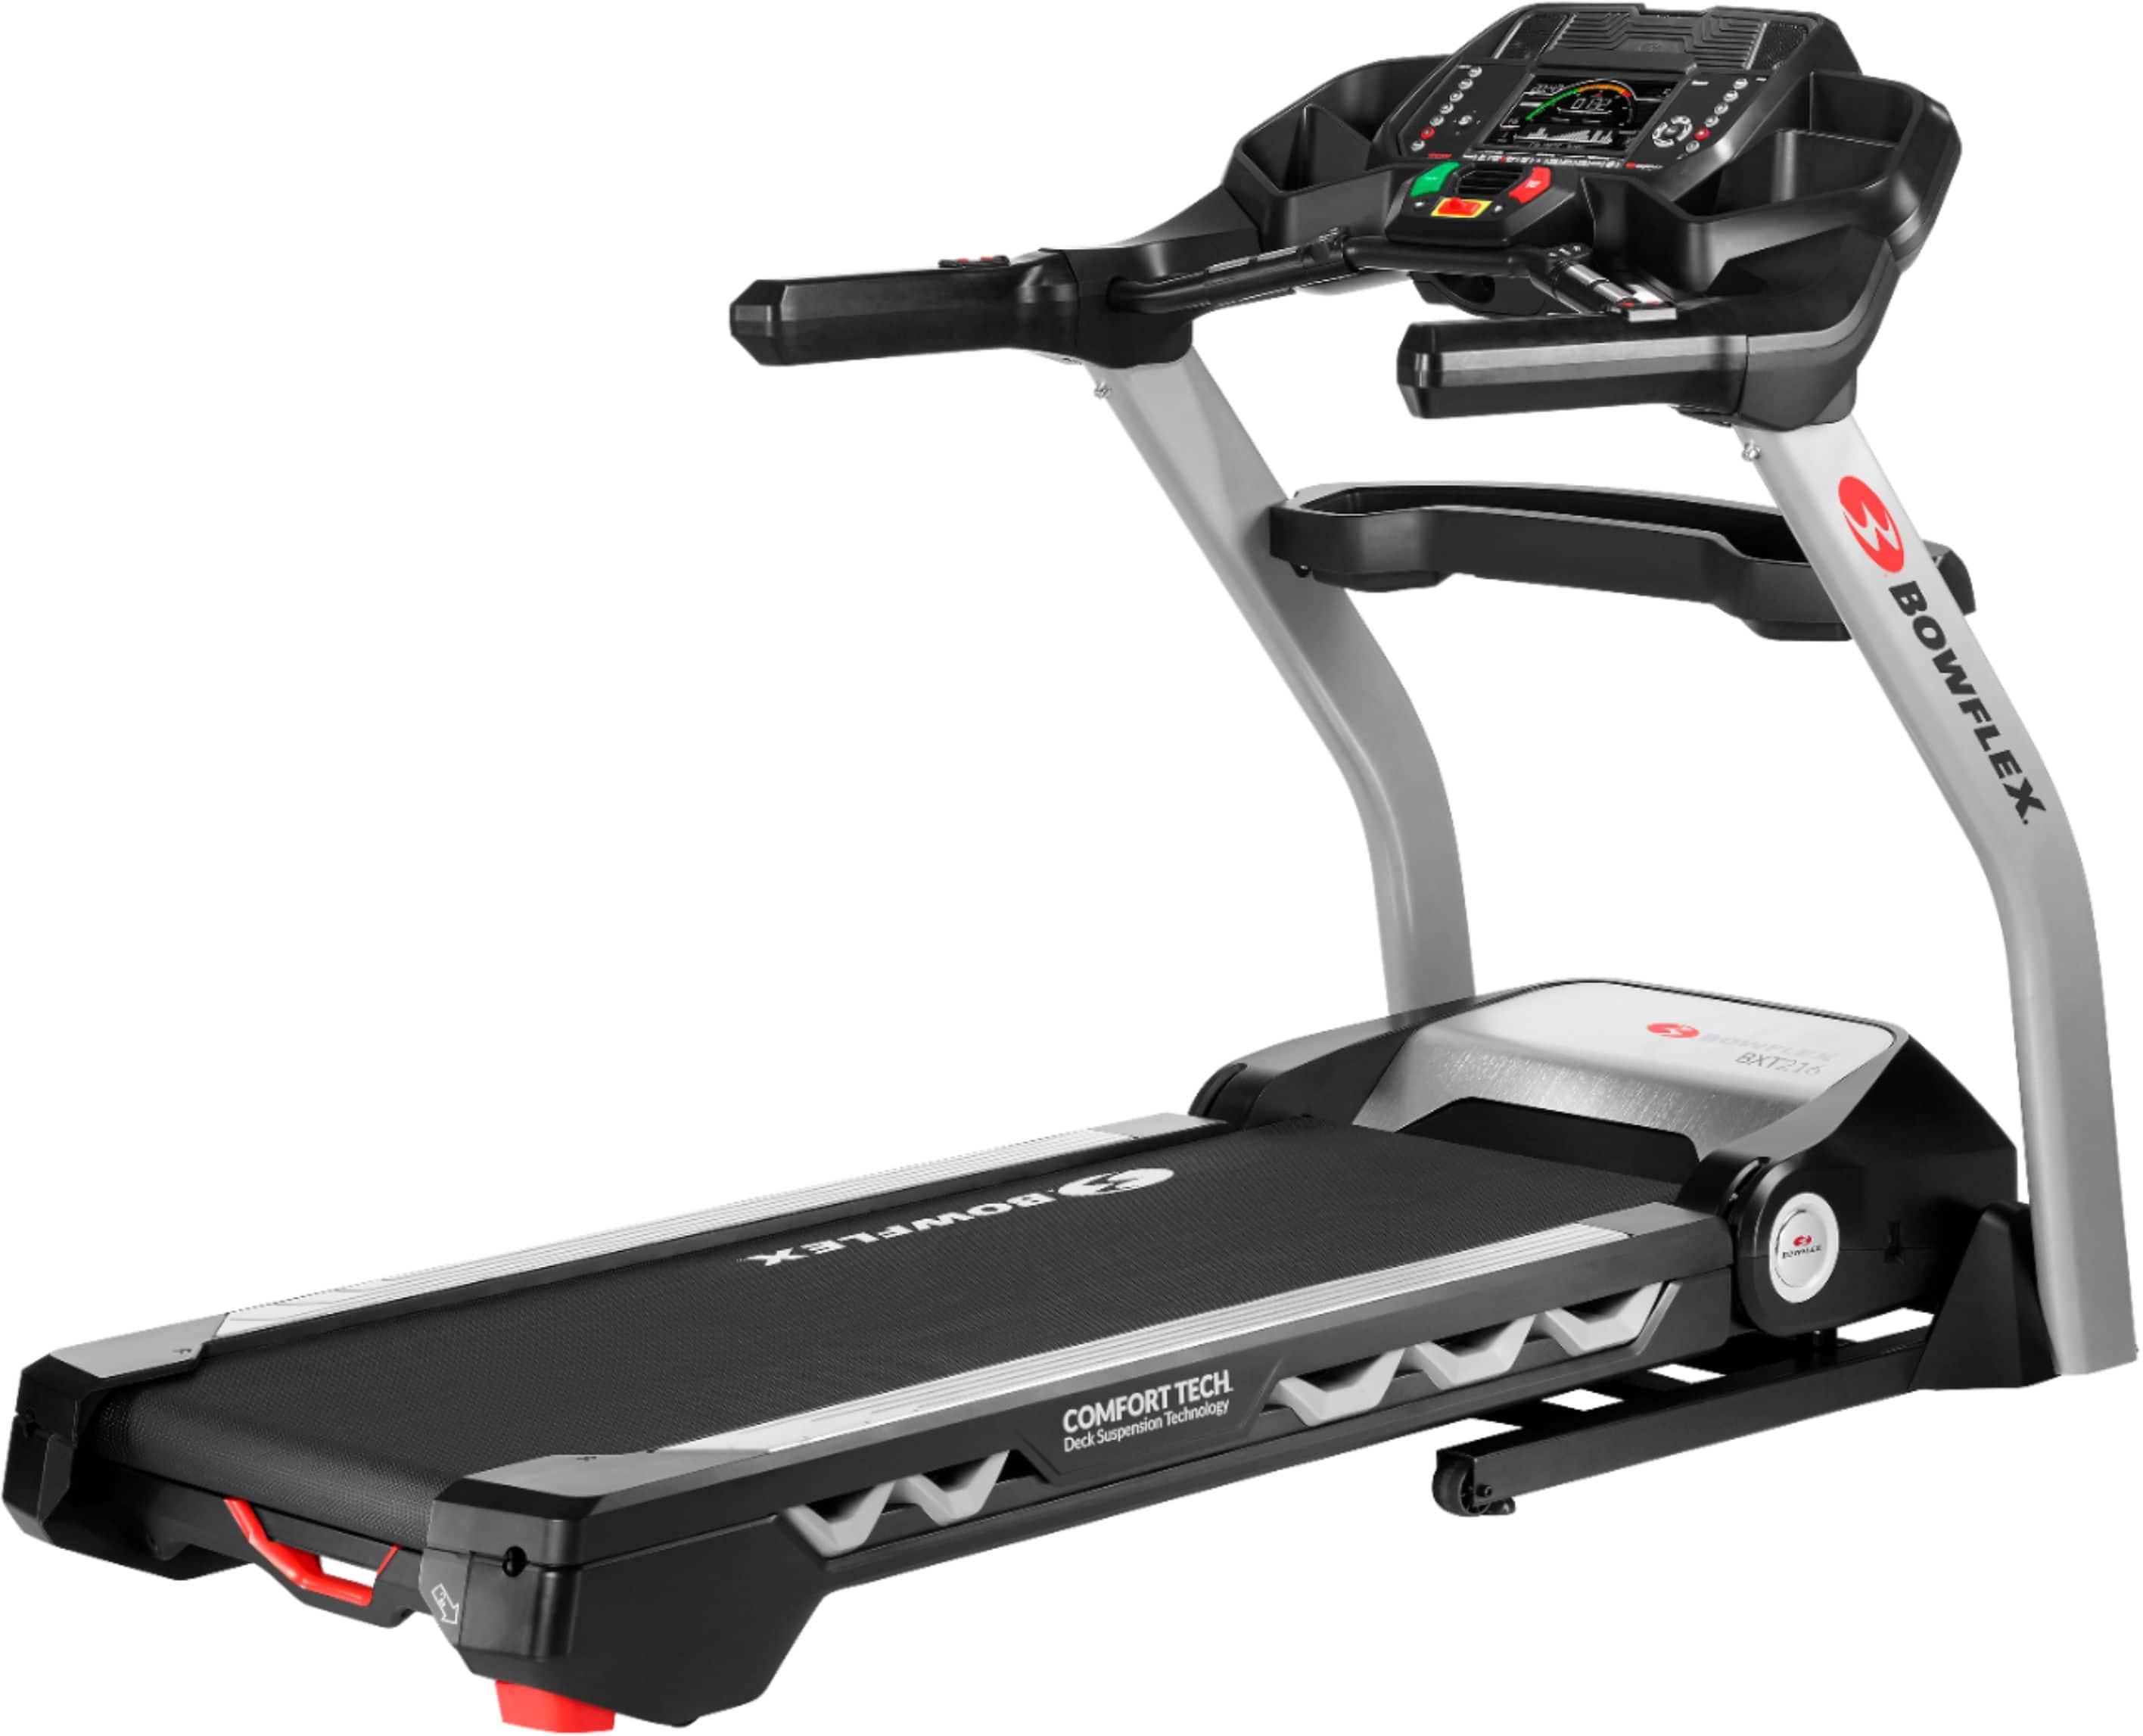 Bowflex - BXT216.  Gray  Deal of the Day:  - $1399.99 best buy